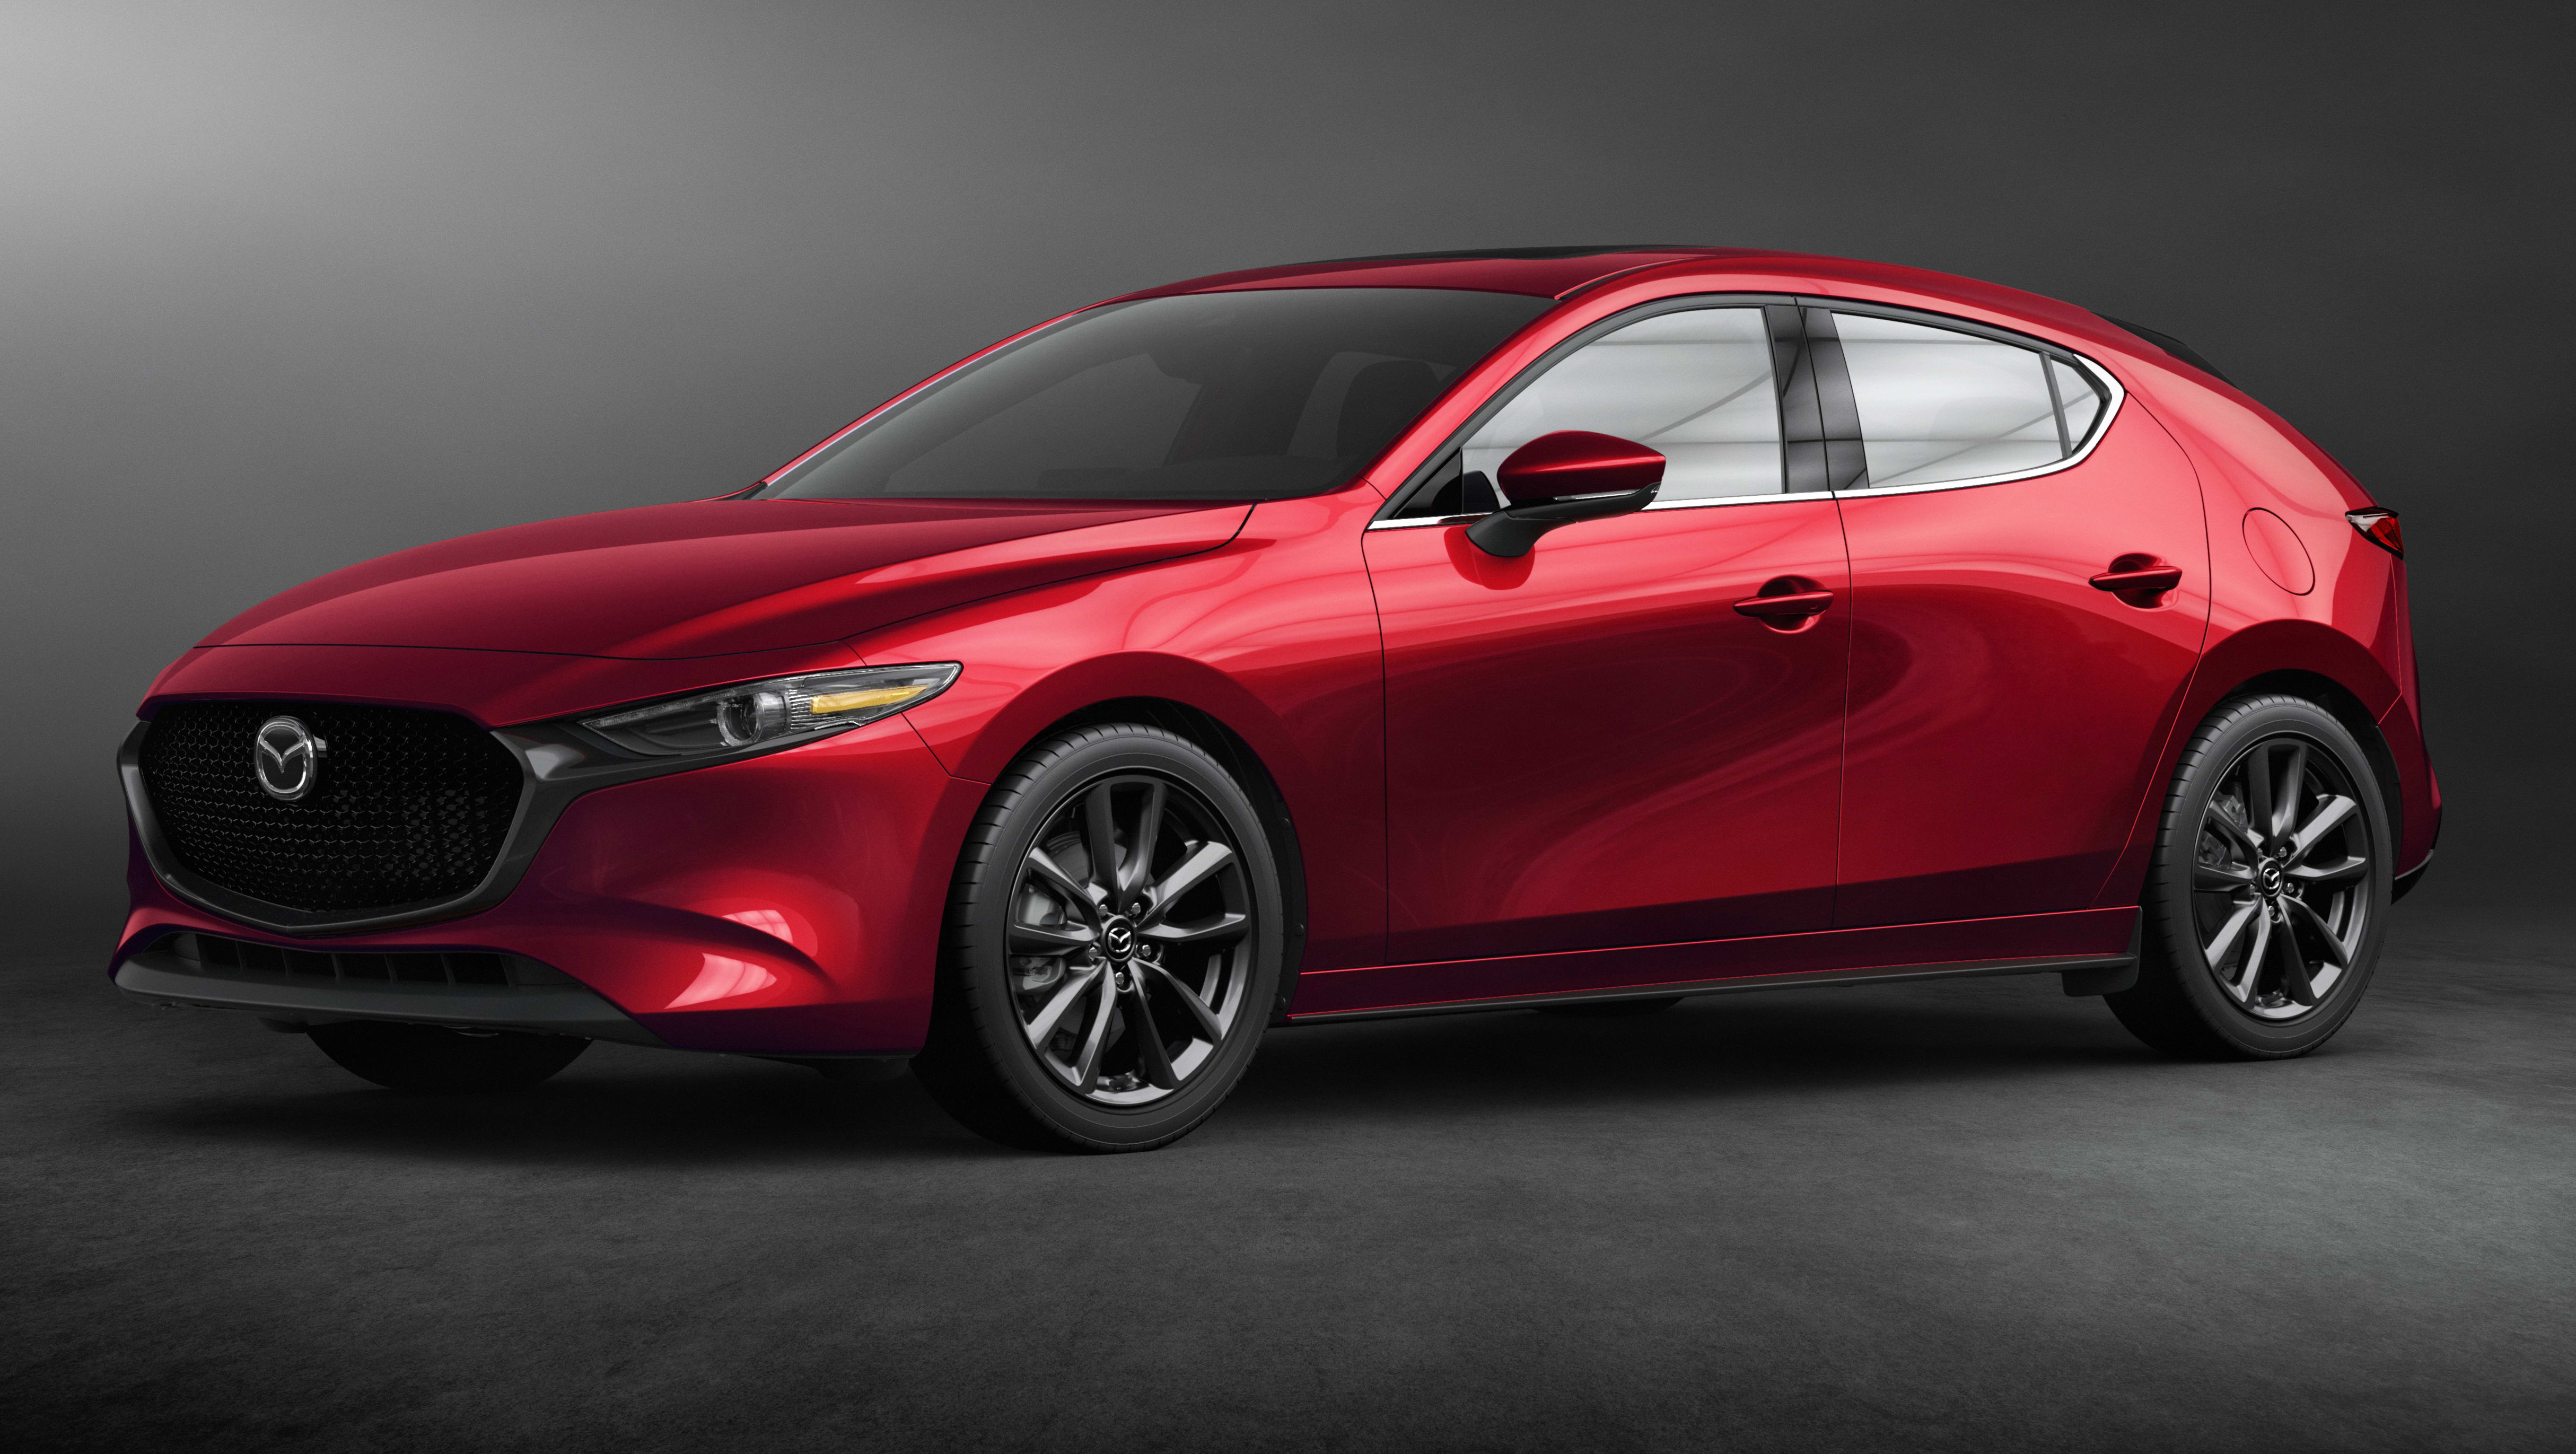 mazda 3 2019 revealed new look engines technology for small car heavyweight car news. Black Bedroom Furniture Sets. Home Design Ideas